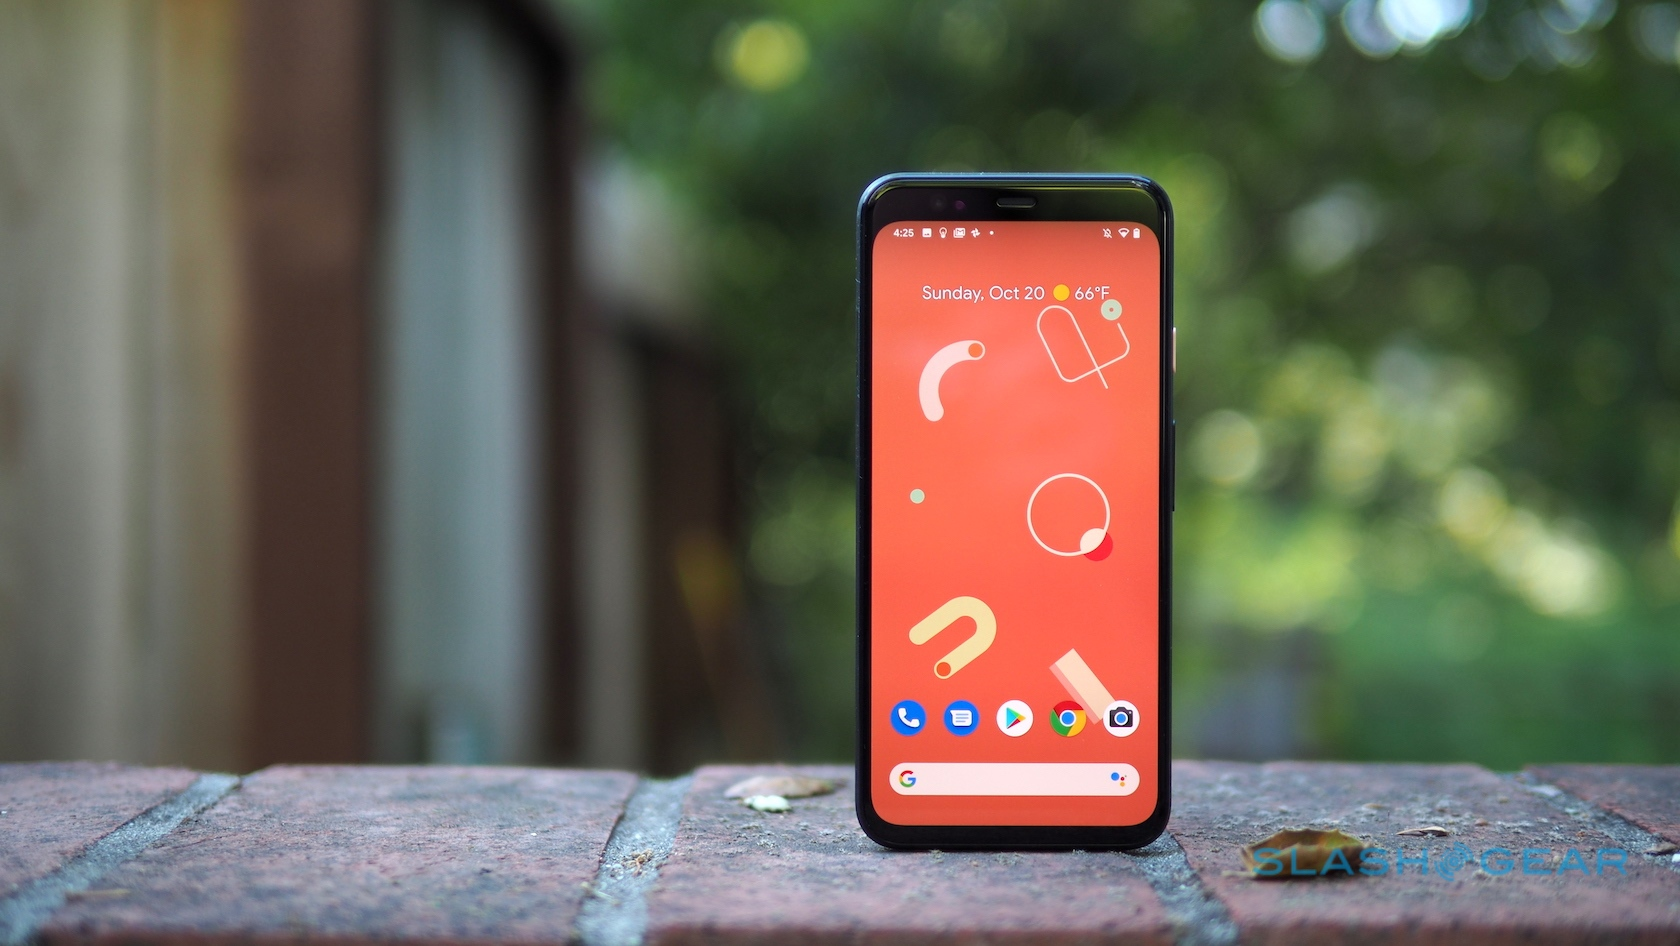 Google Pixel 4 Review: Self-Sabotage - SlashGear